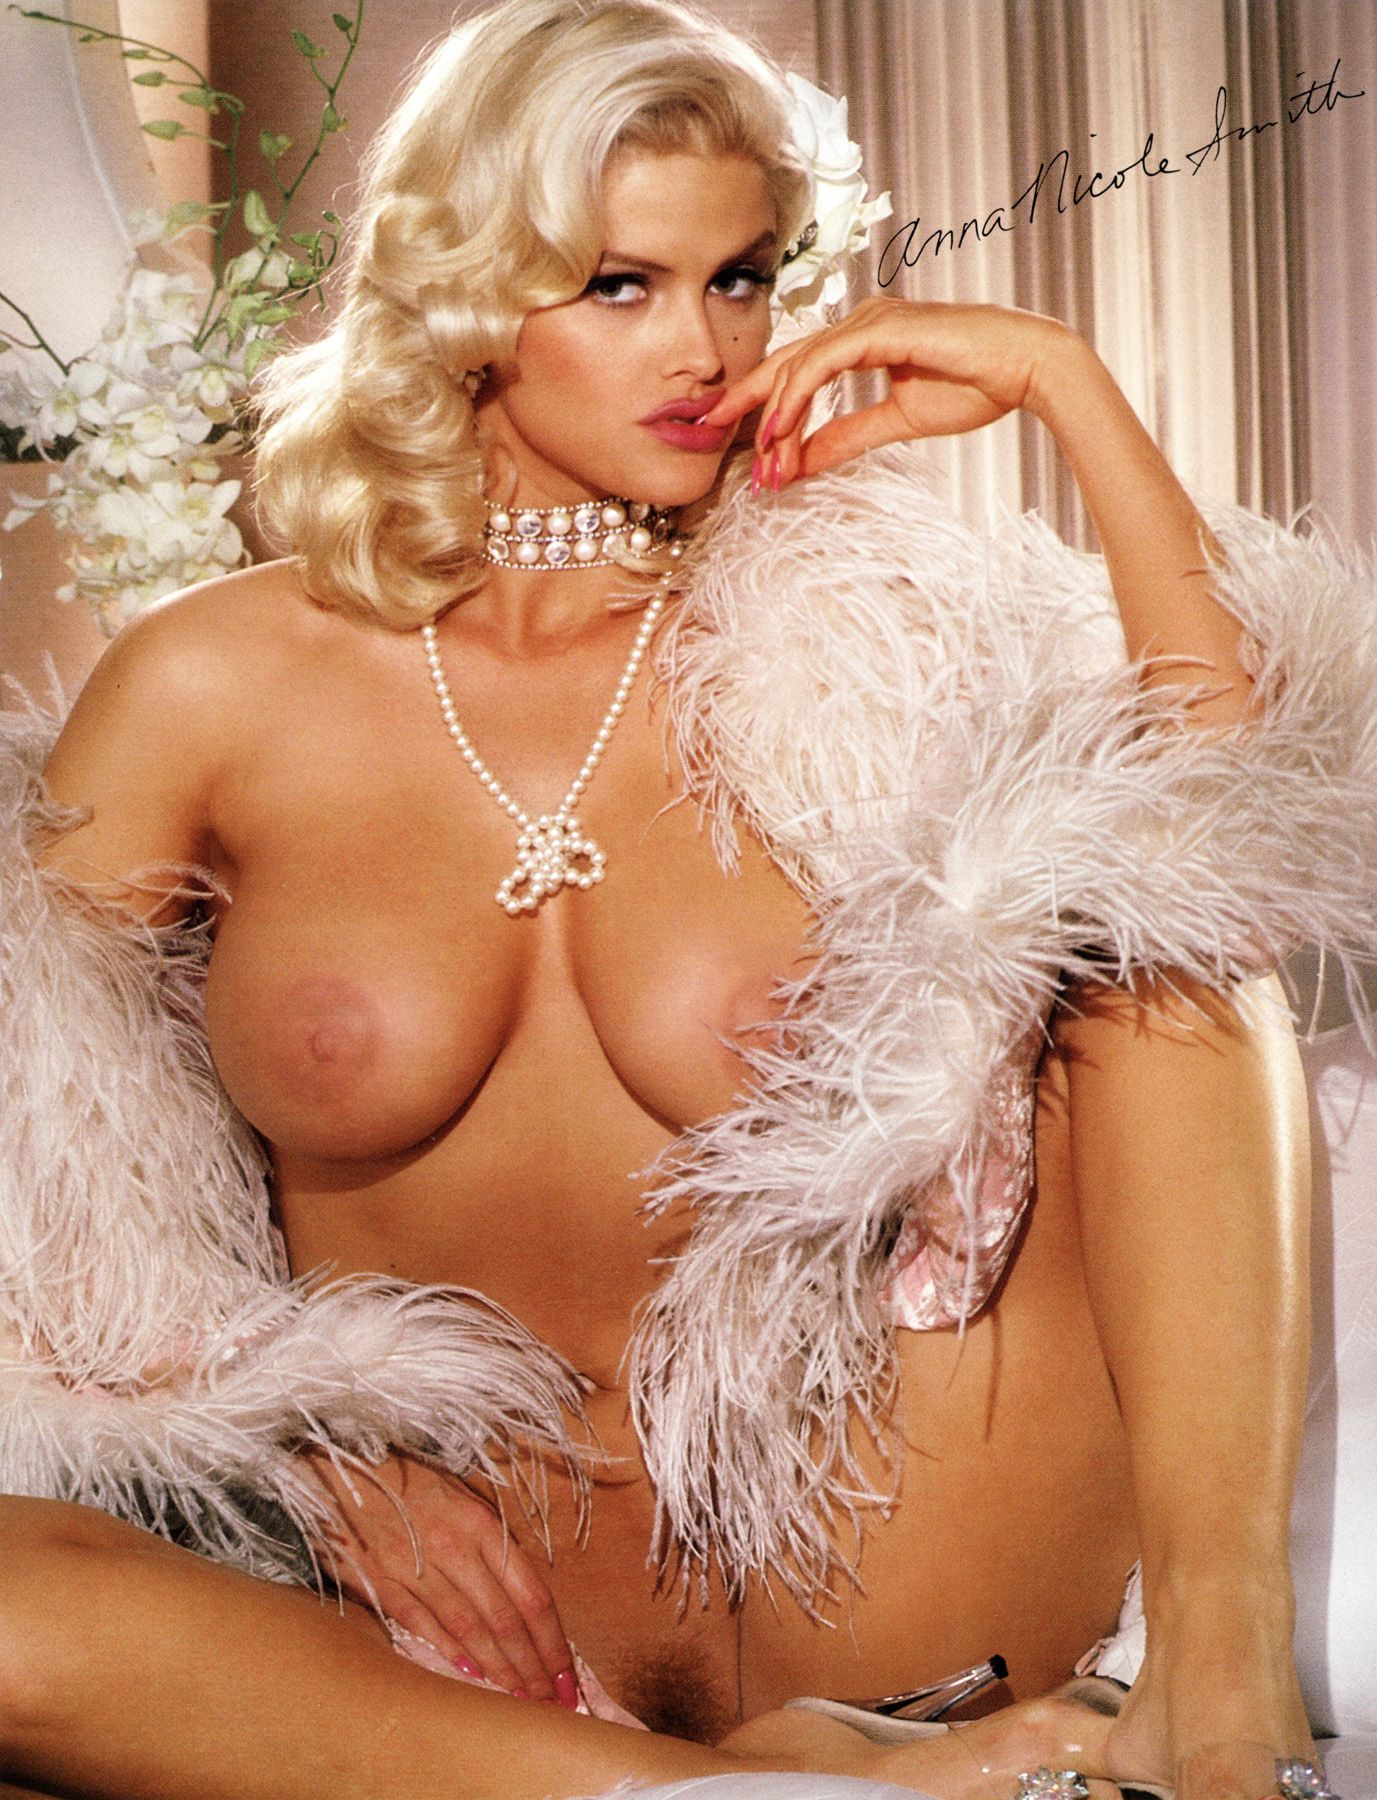 Nude photos anna nicole smith